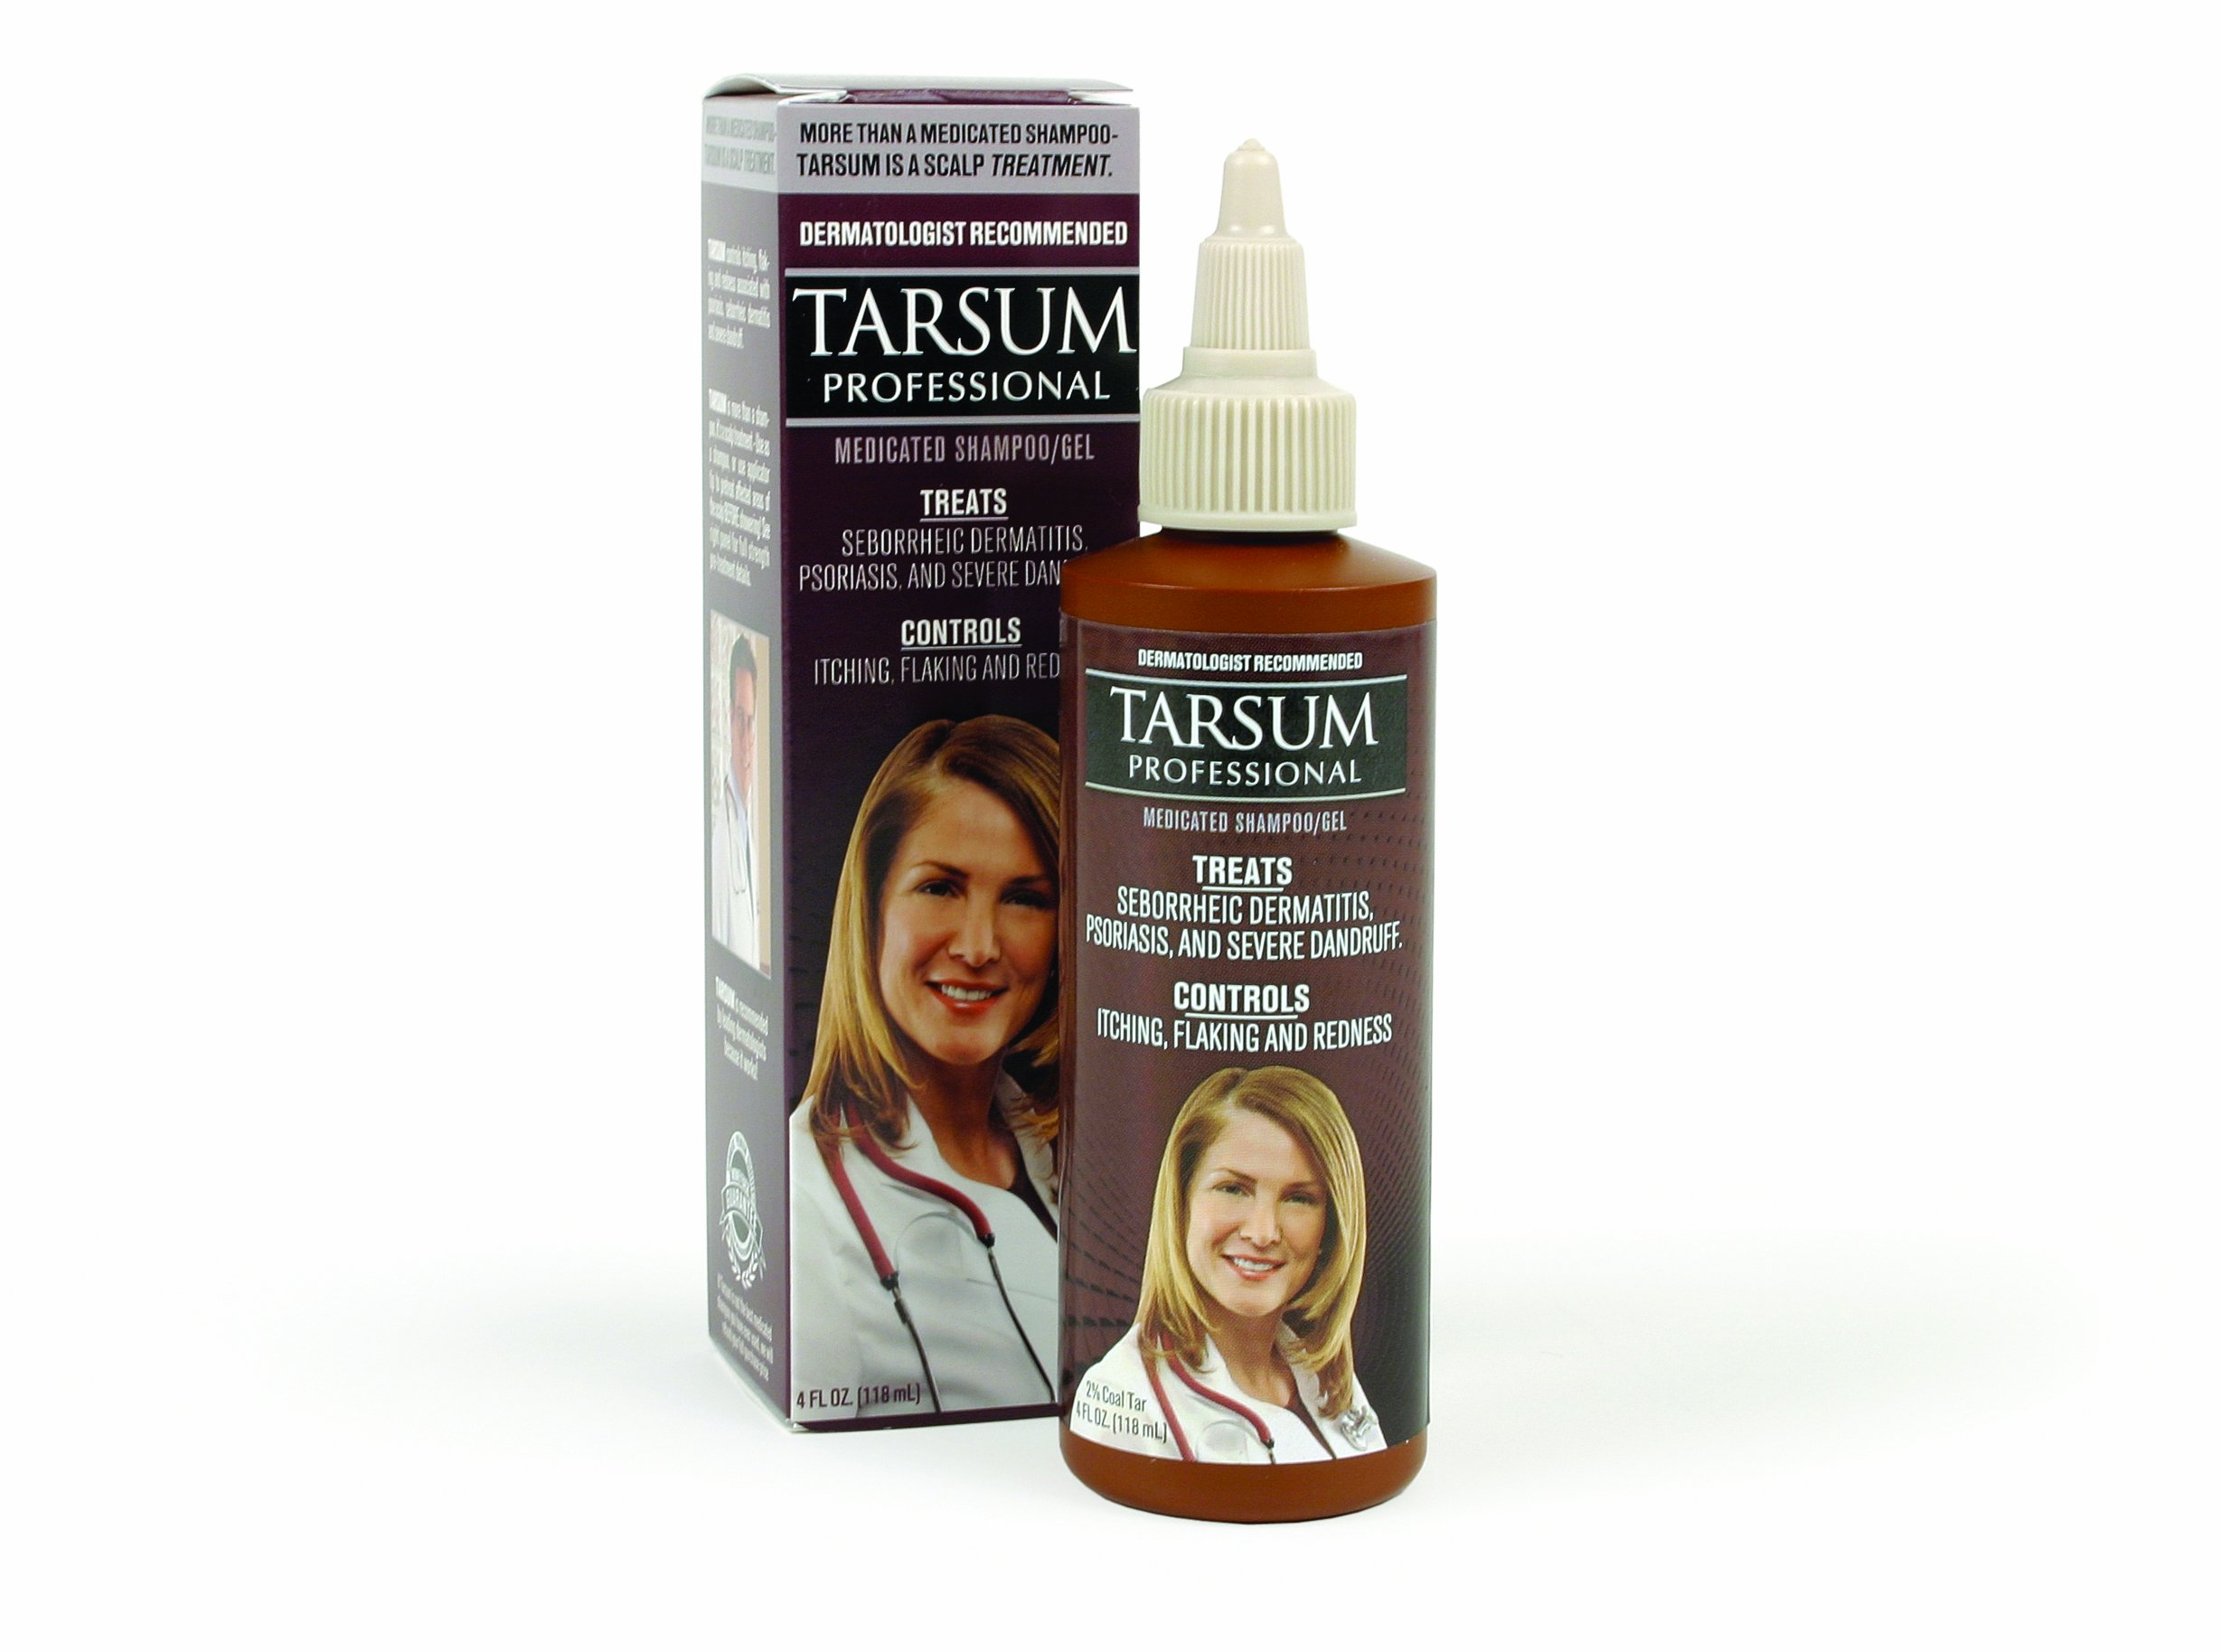 Tarsum Professional Medicated Shampoo/gel, 4-Ounce (Pack of 2)